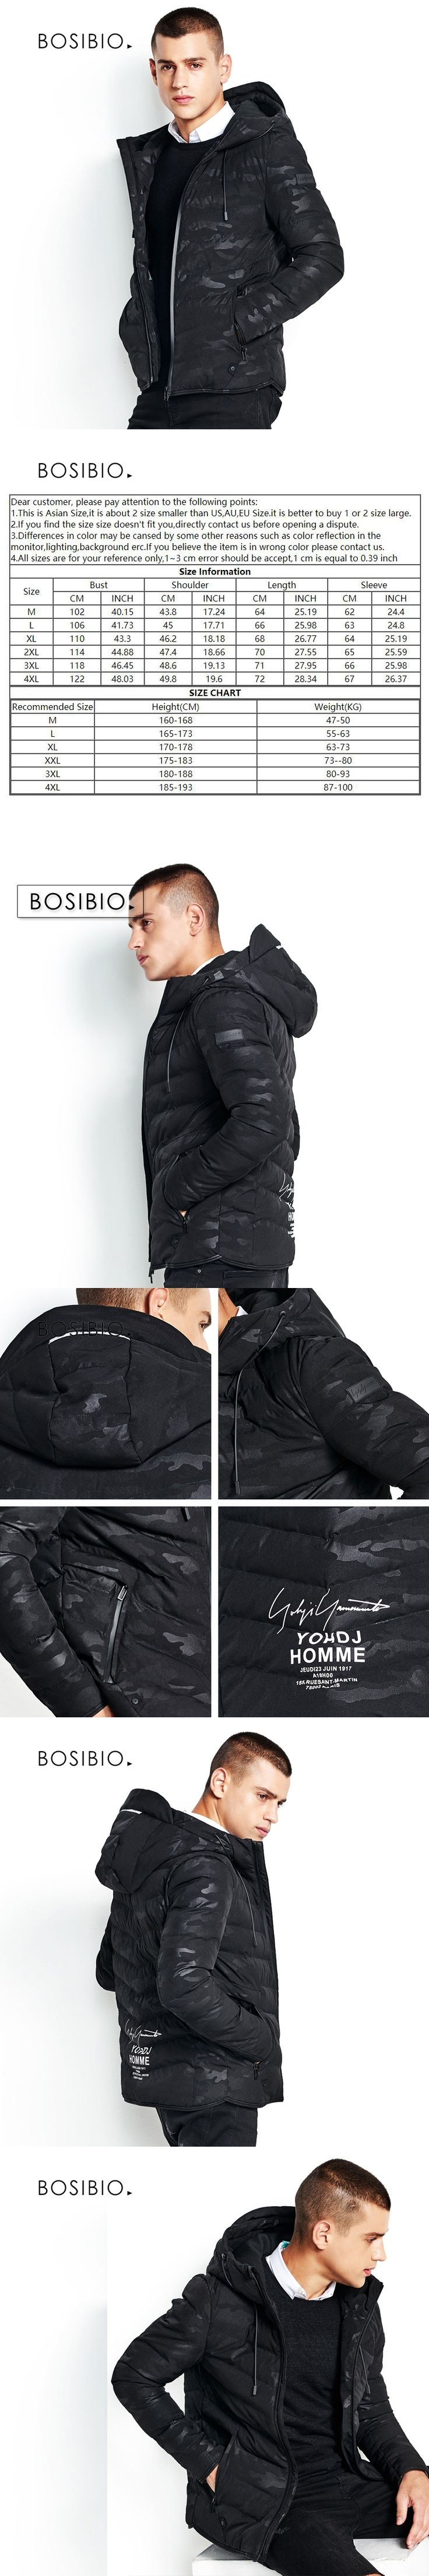 BOSIBIO Mens Fashion Camouflage Coat Male Winter Padded Warm Hooded Jackets Black Thick Slim Fit Parkas Top Quality 66623